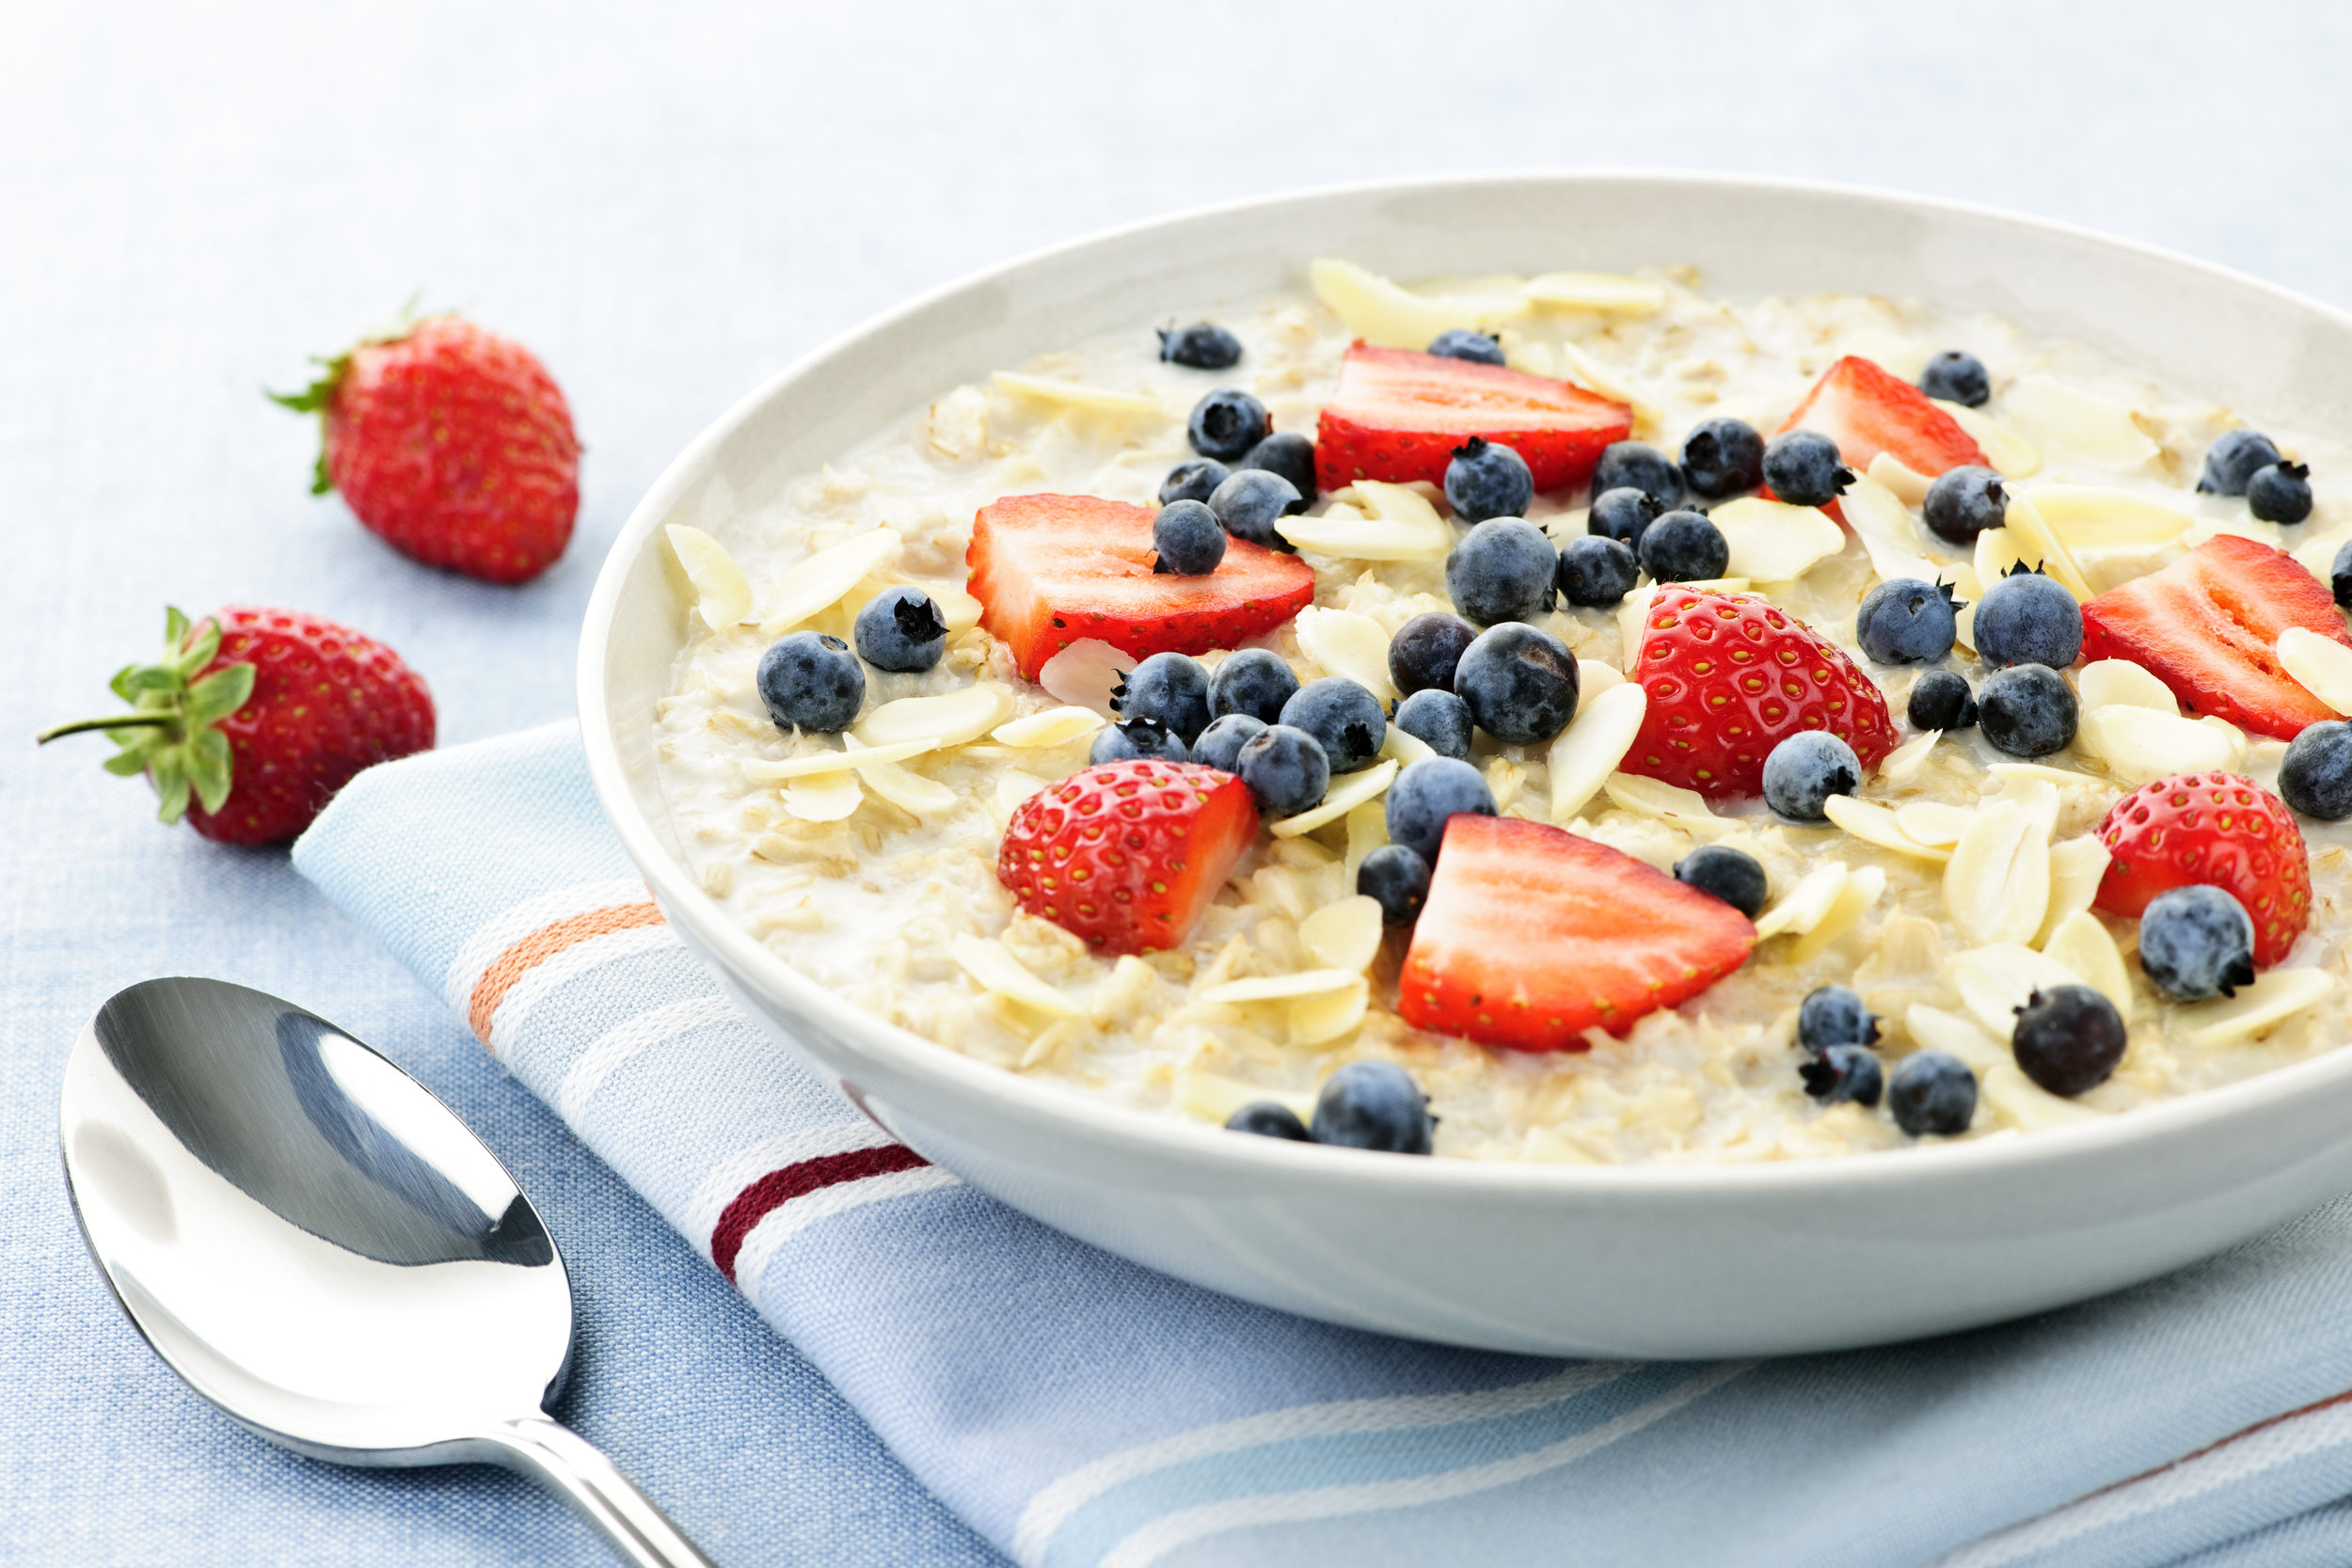 Bowl of Oatmeal with Berries.jpg